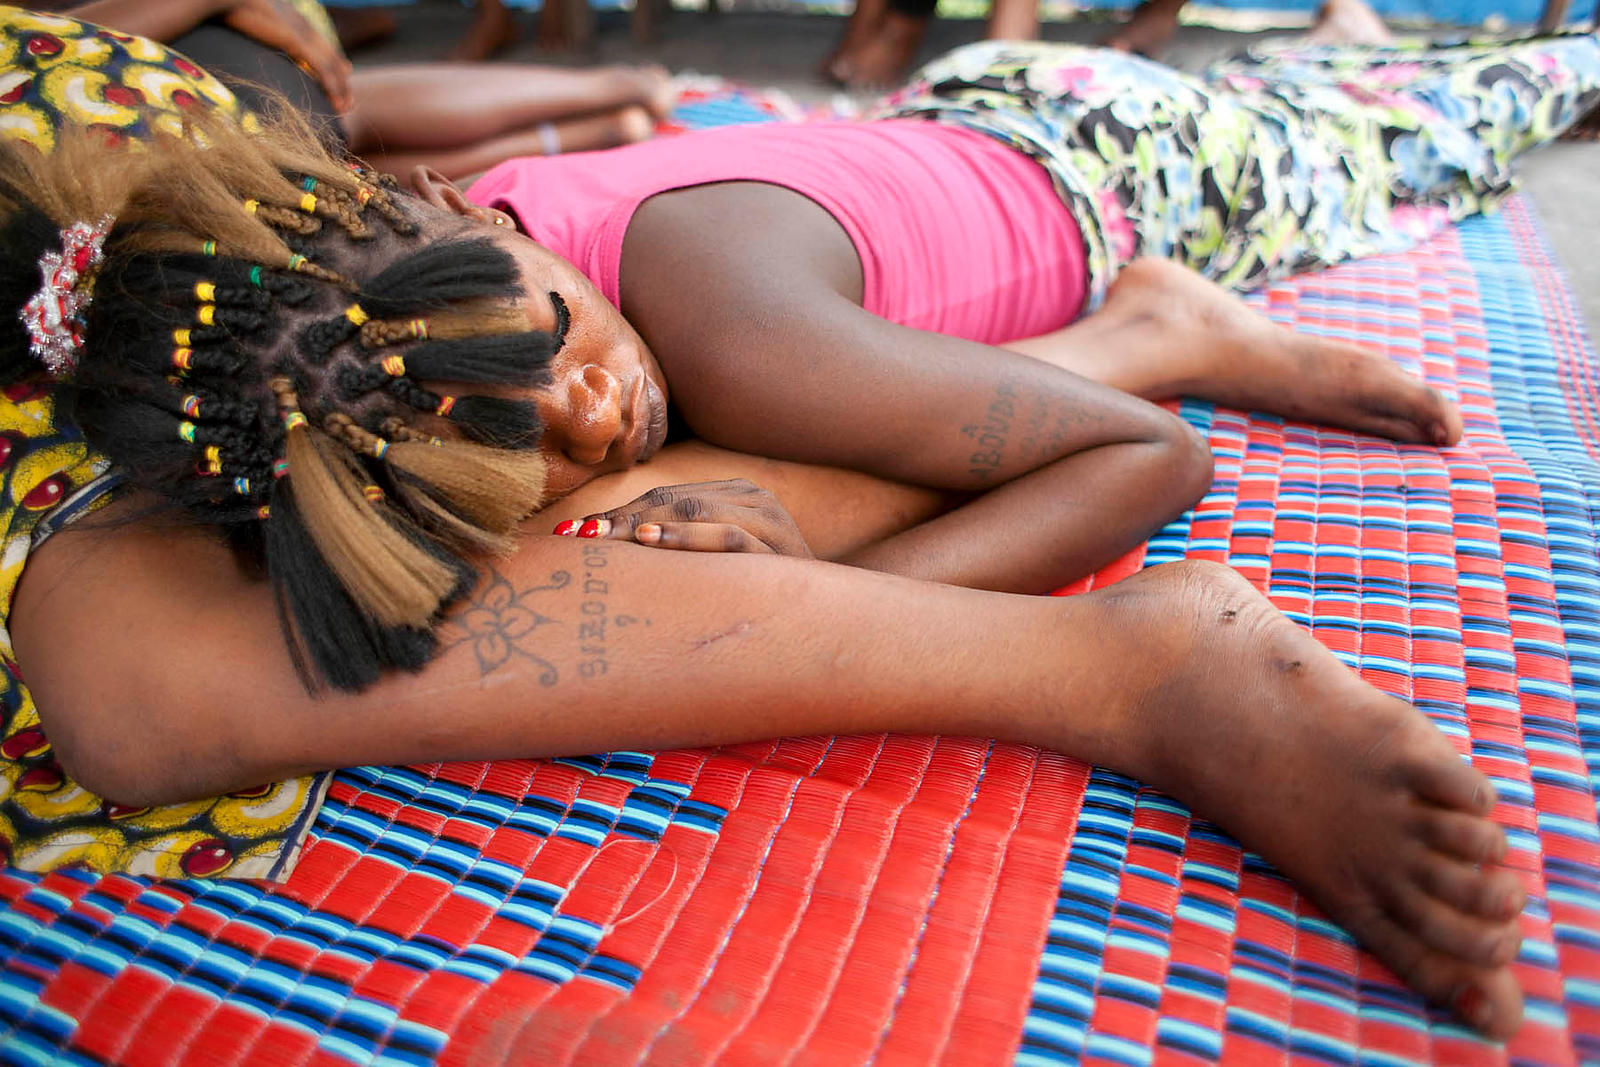 Democratic Republic of Congo, Kinshasa. Centre Bomoyi Bwa Sika: health education program to Reduce the Risk of HIV and counseling for young women living on the streets and are victims of sexual violence.